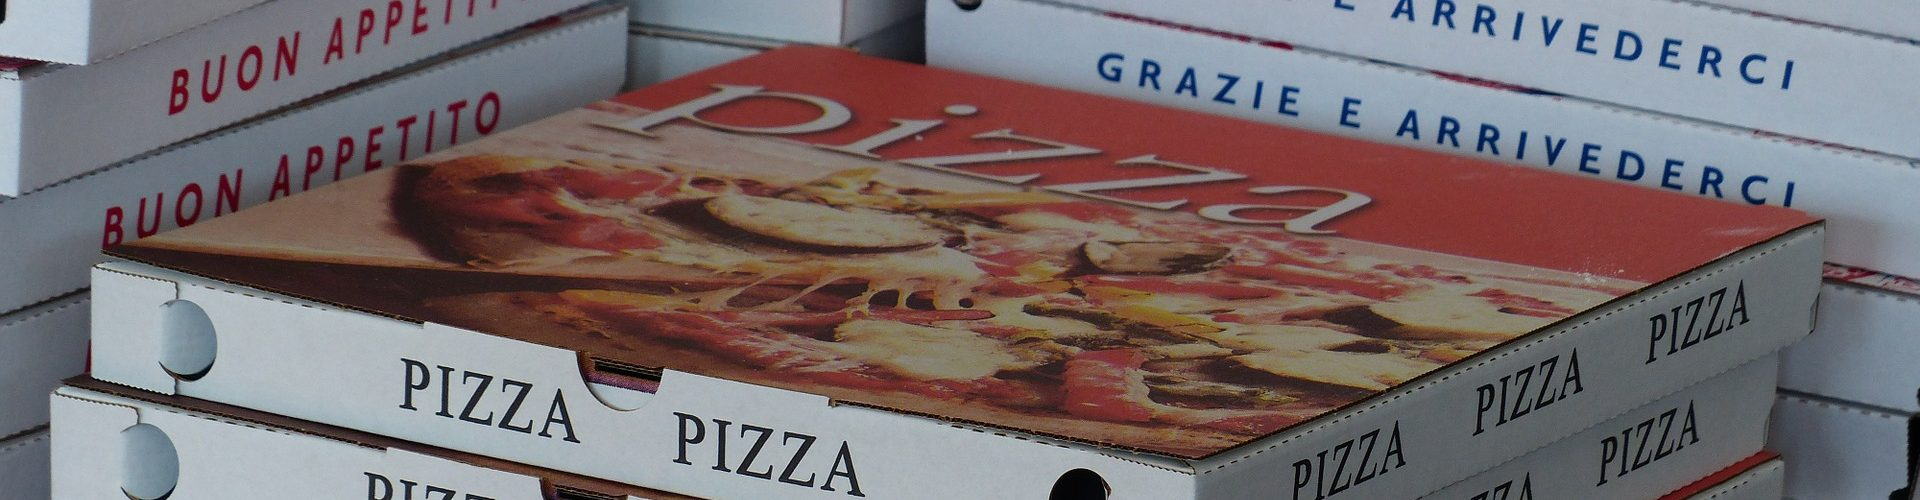 scatole per la pizza